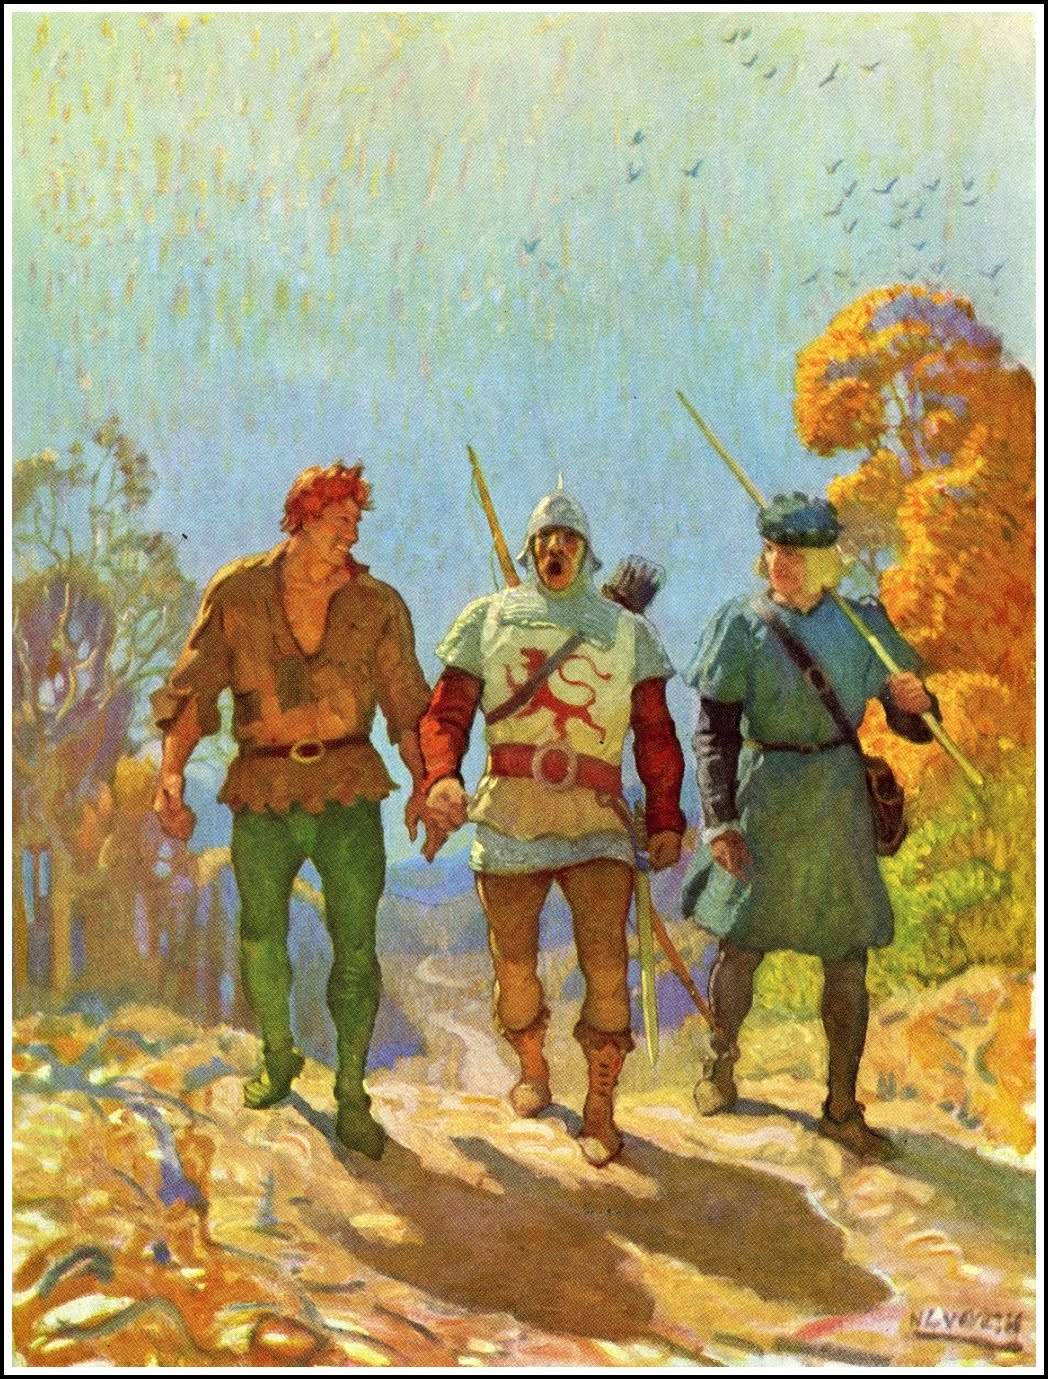 All story: N. C. Wyeth The White Company by A. Conan Doyle Published by David McKay ~ 1922